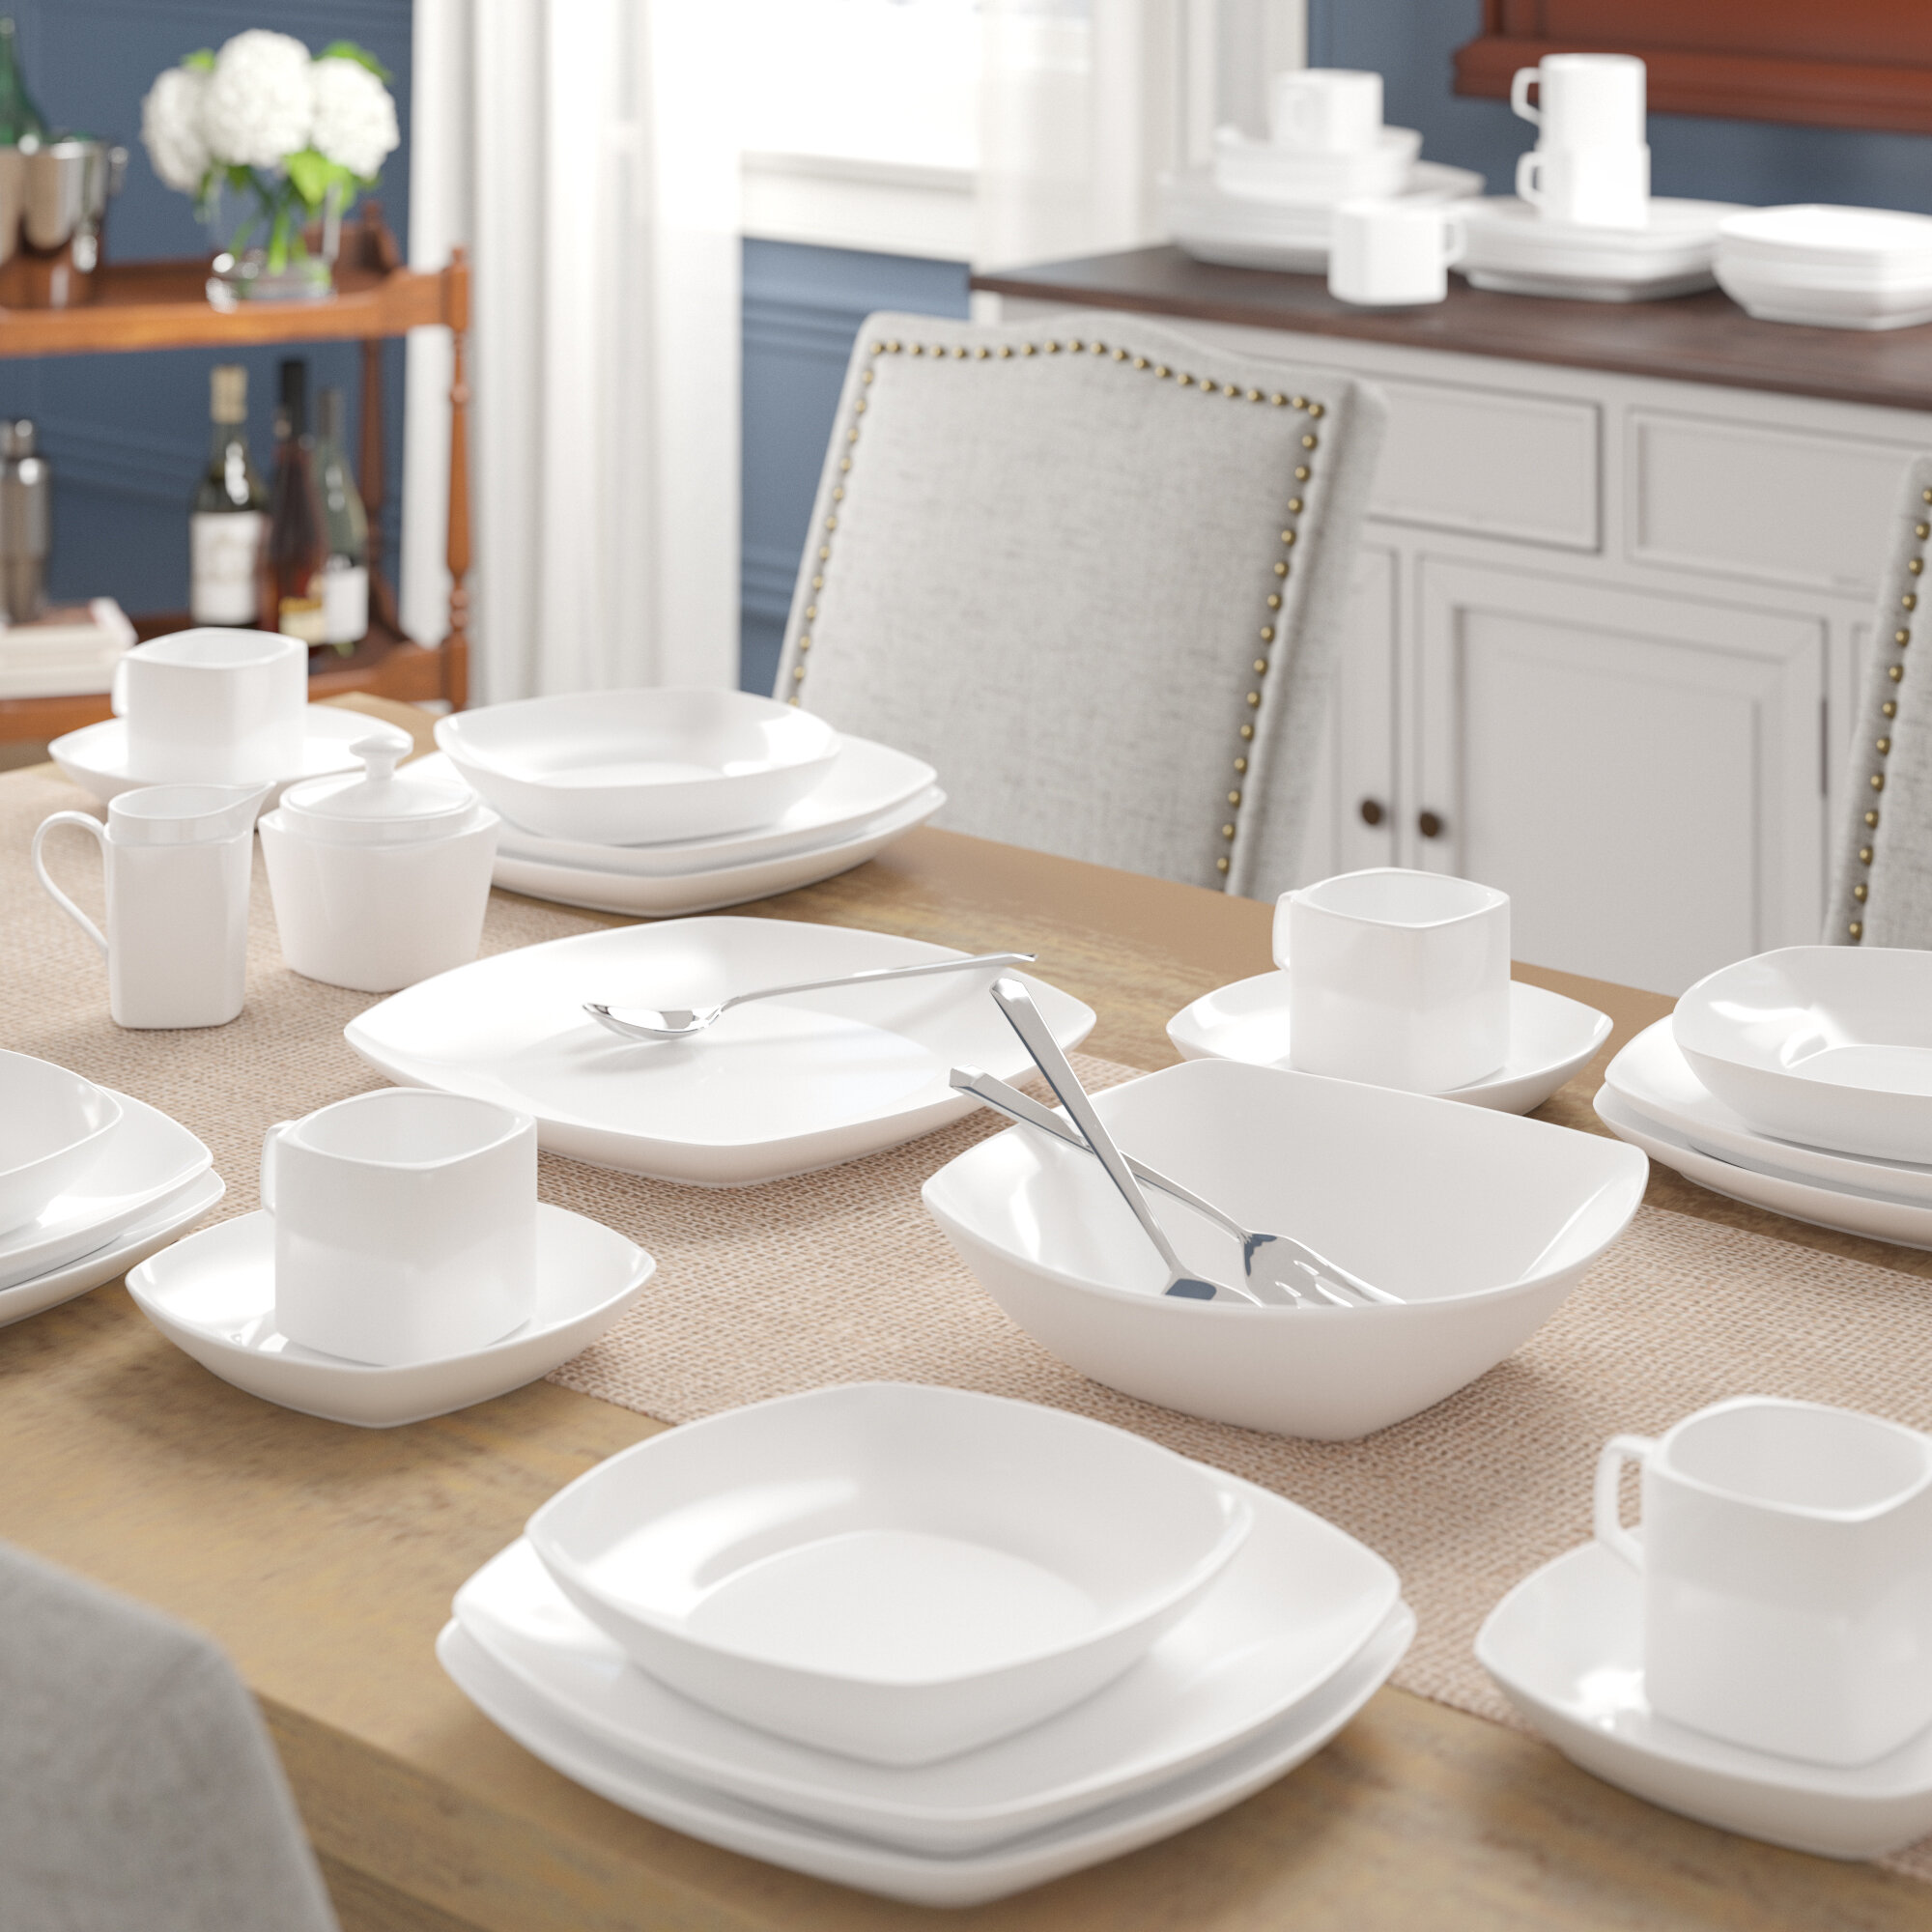 & Mint Pantry Filomena 45 Piece Dinnerware Set u0026 Reviews | Wayfair